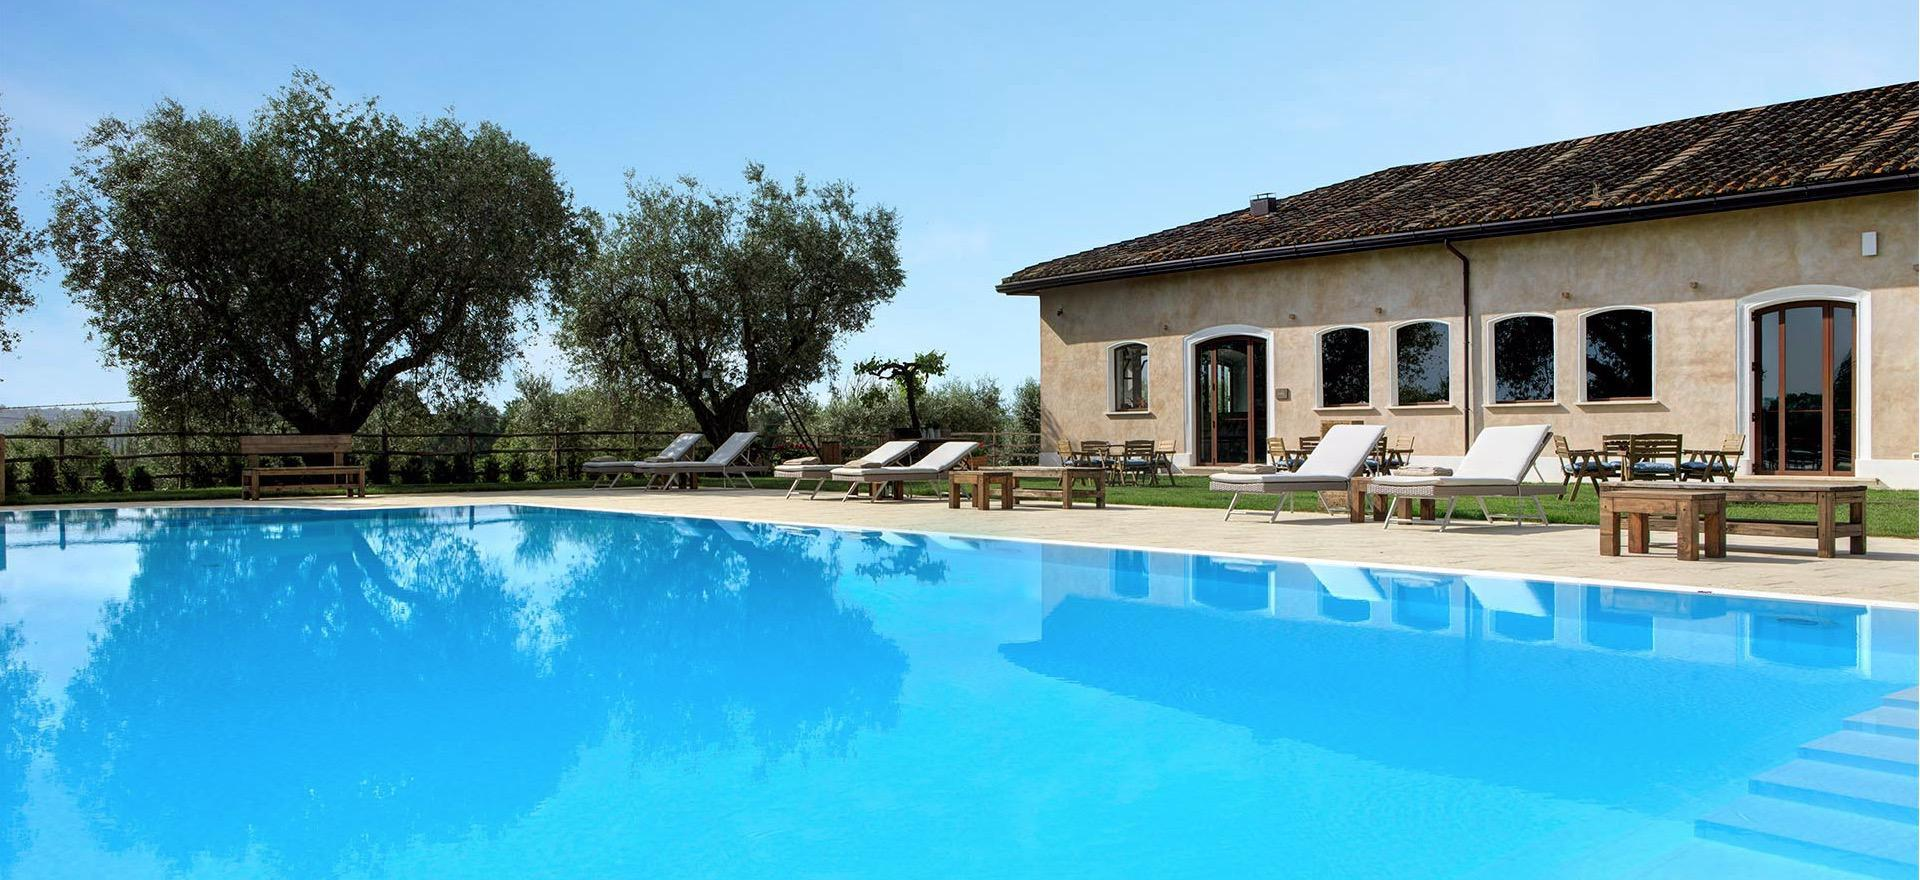 Agriturismo Umbria Luxury agriturismo near Rome with restaurant and swimming pool